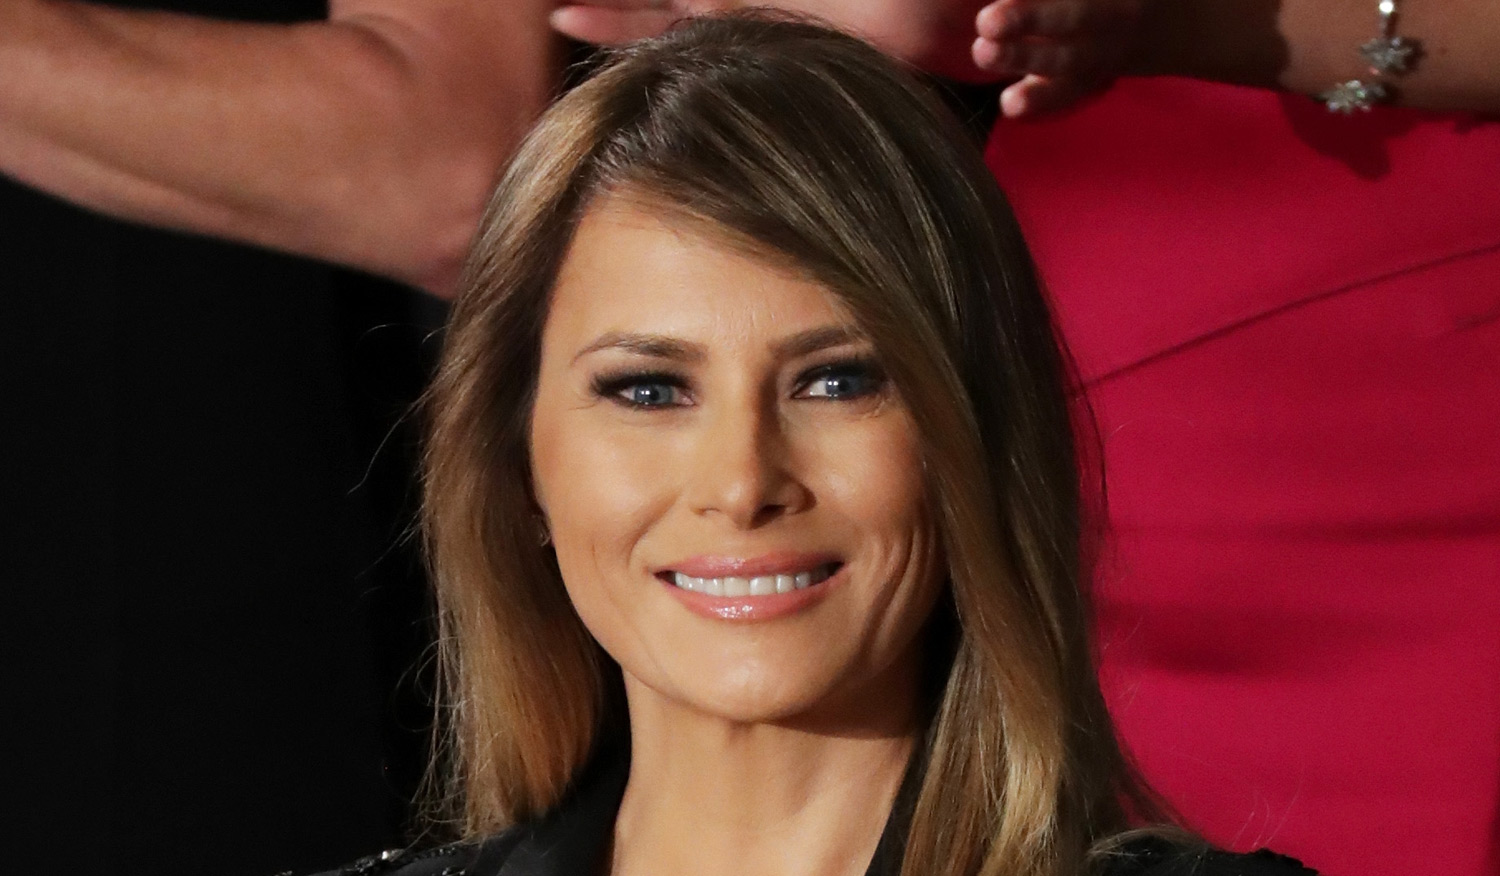 Melania Trump's Official Portrait As First Lady